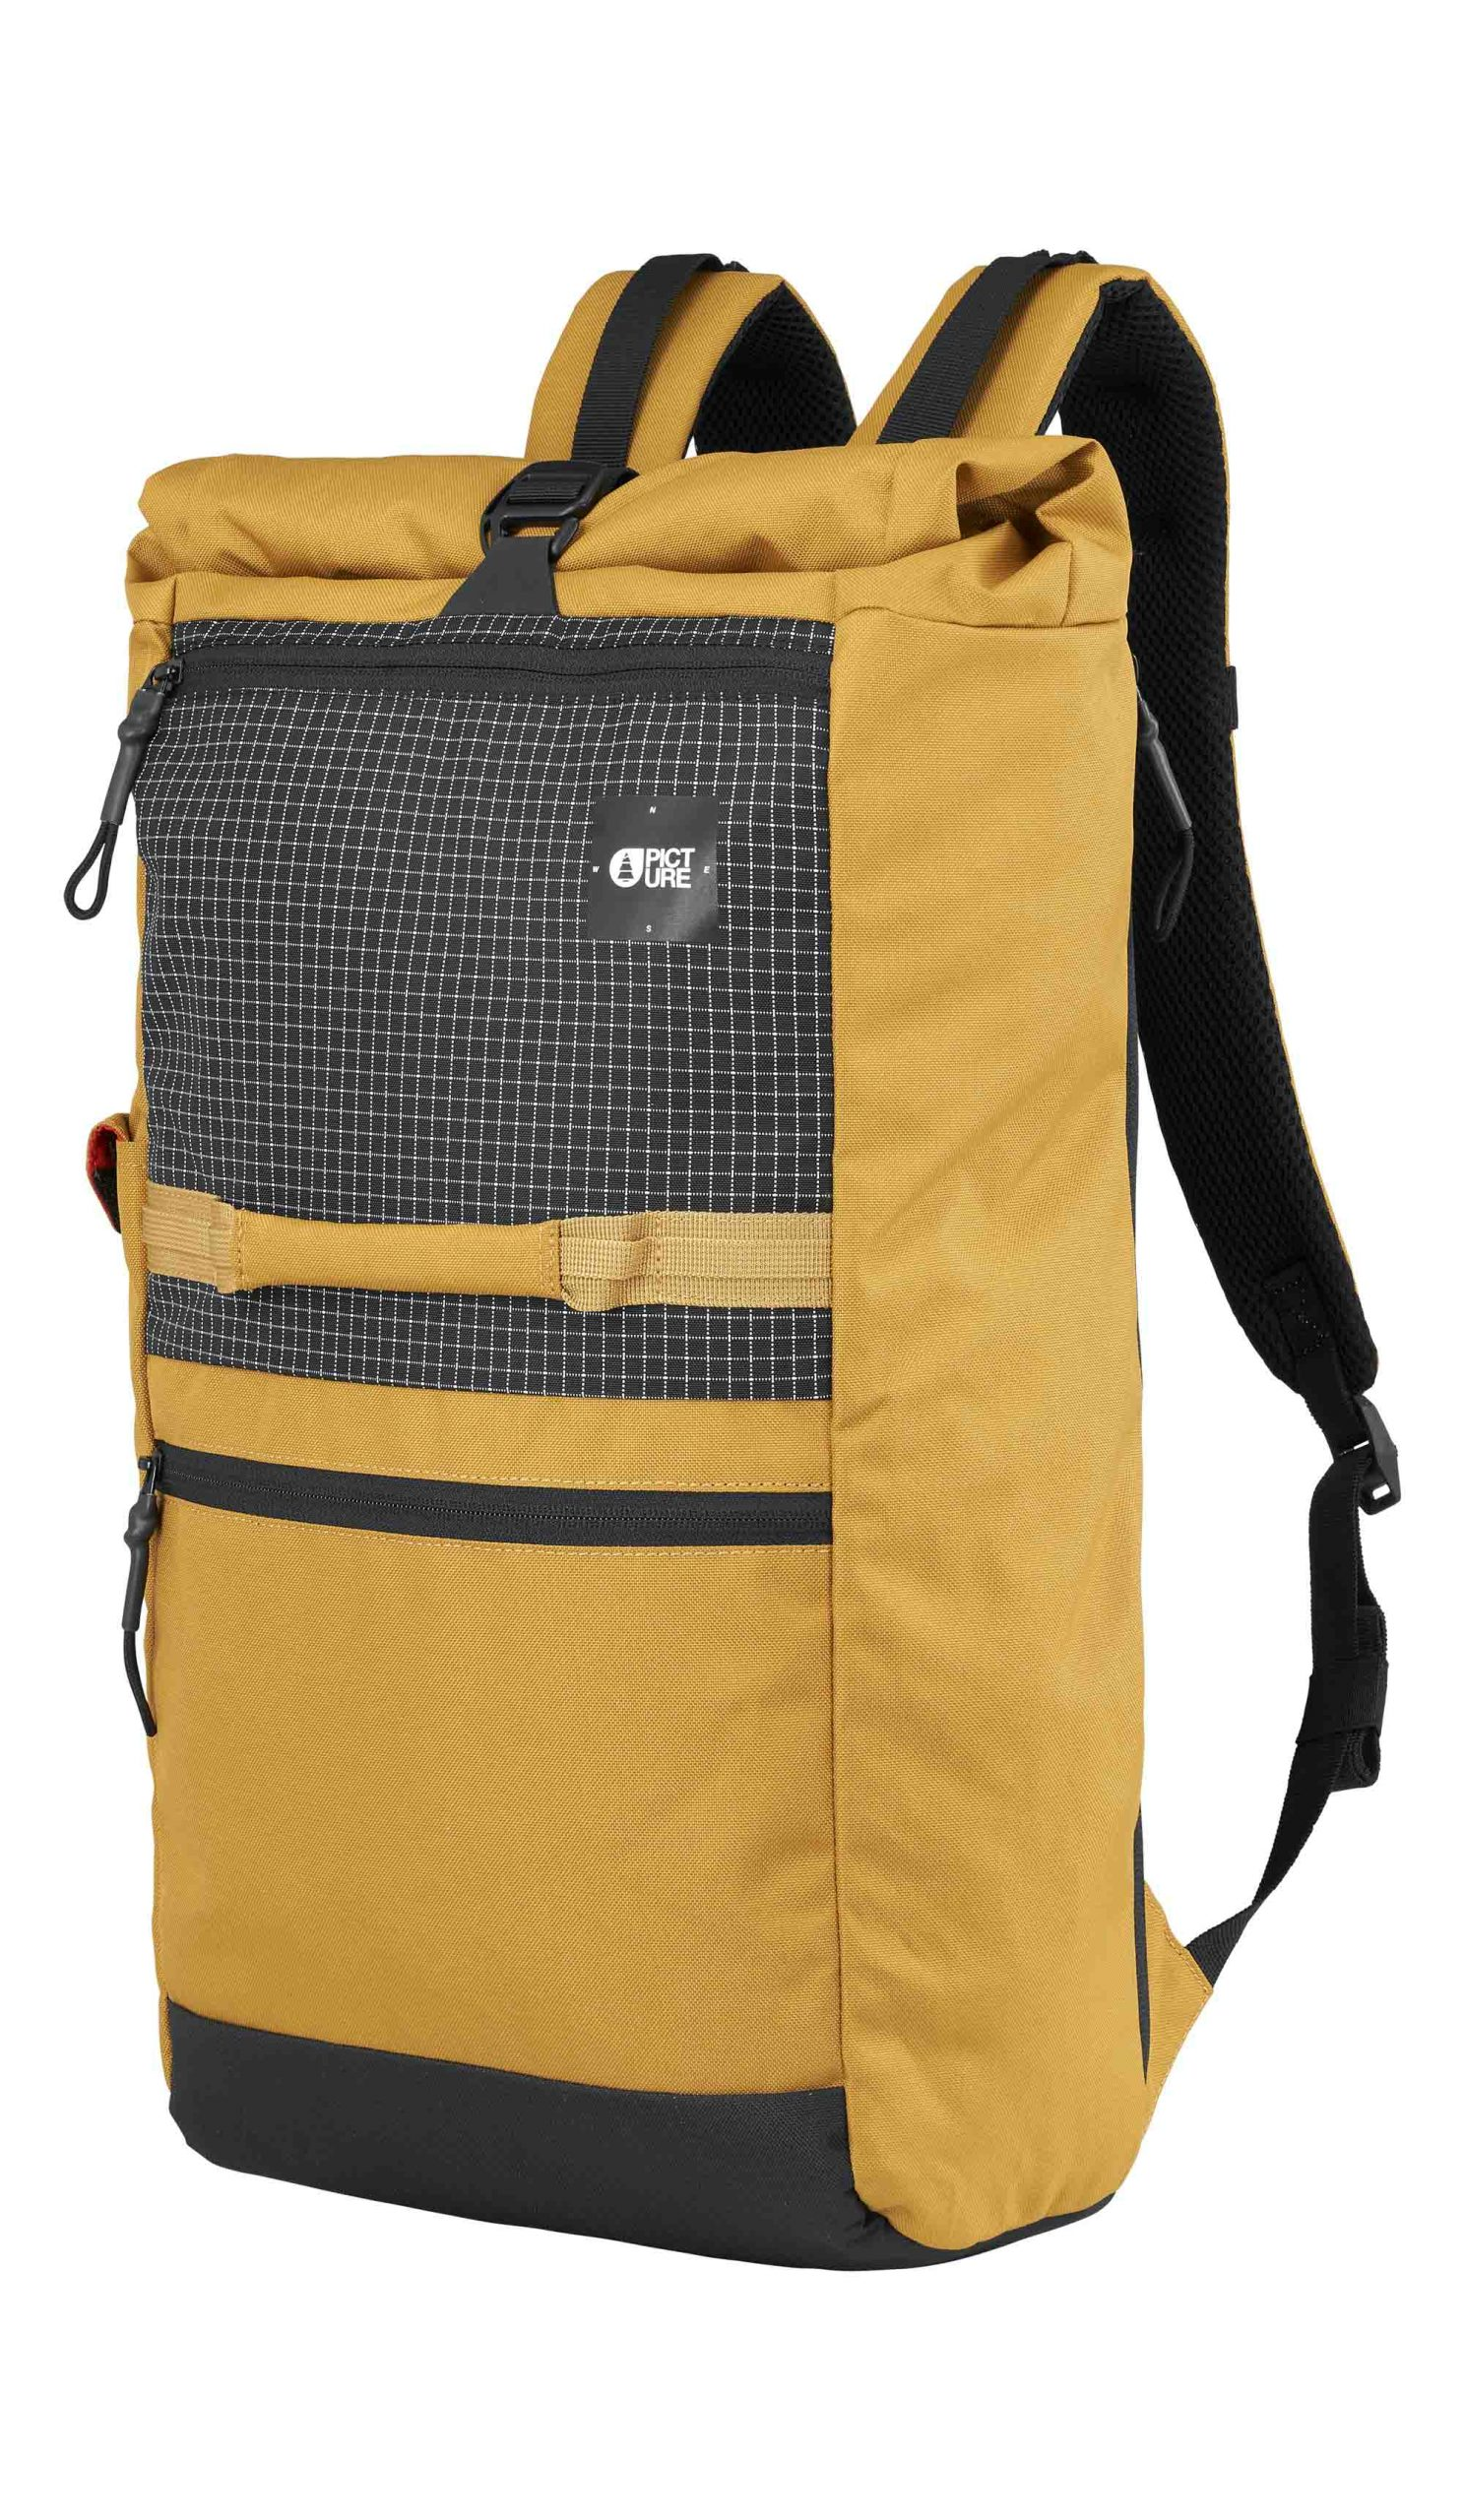 Picture S/S 2022 Lifestyle Backpacks